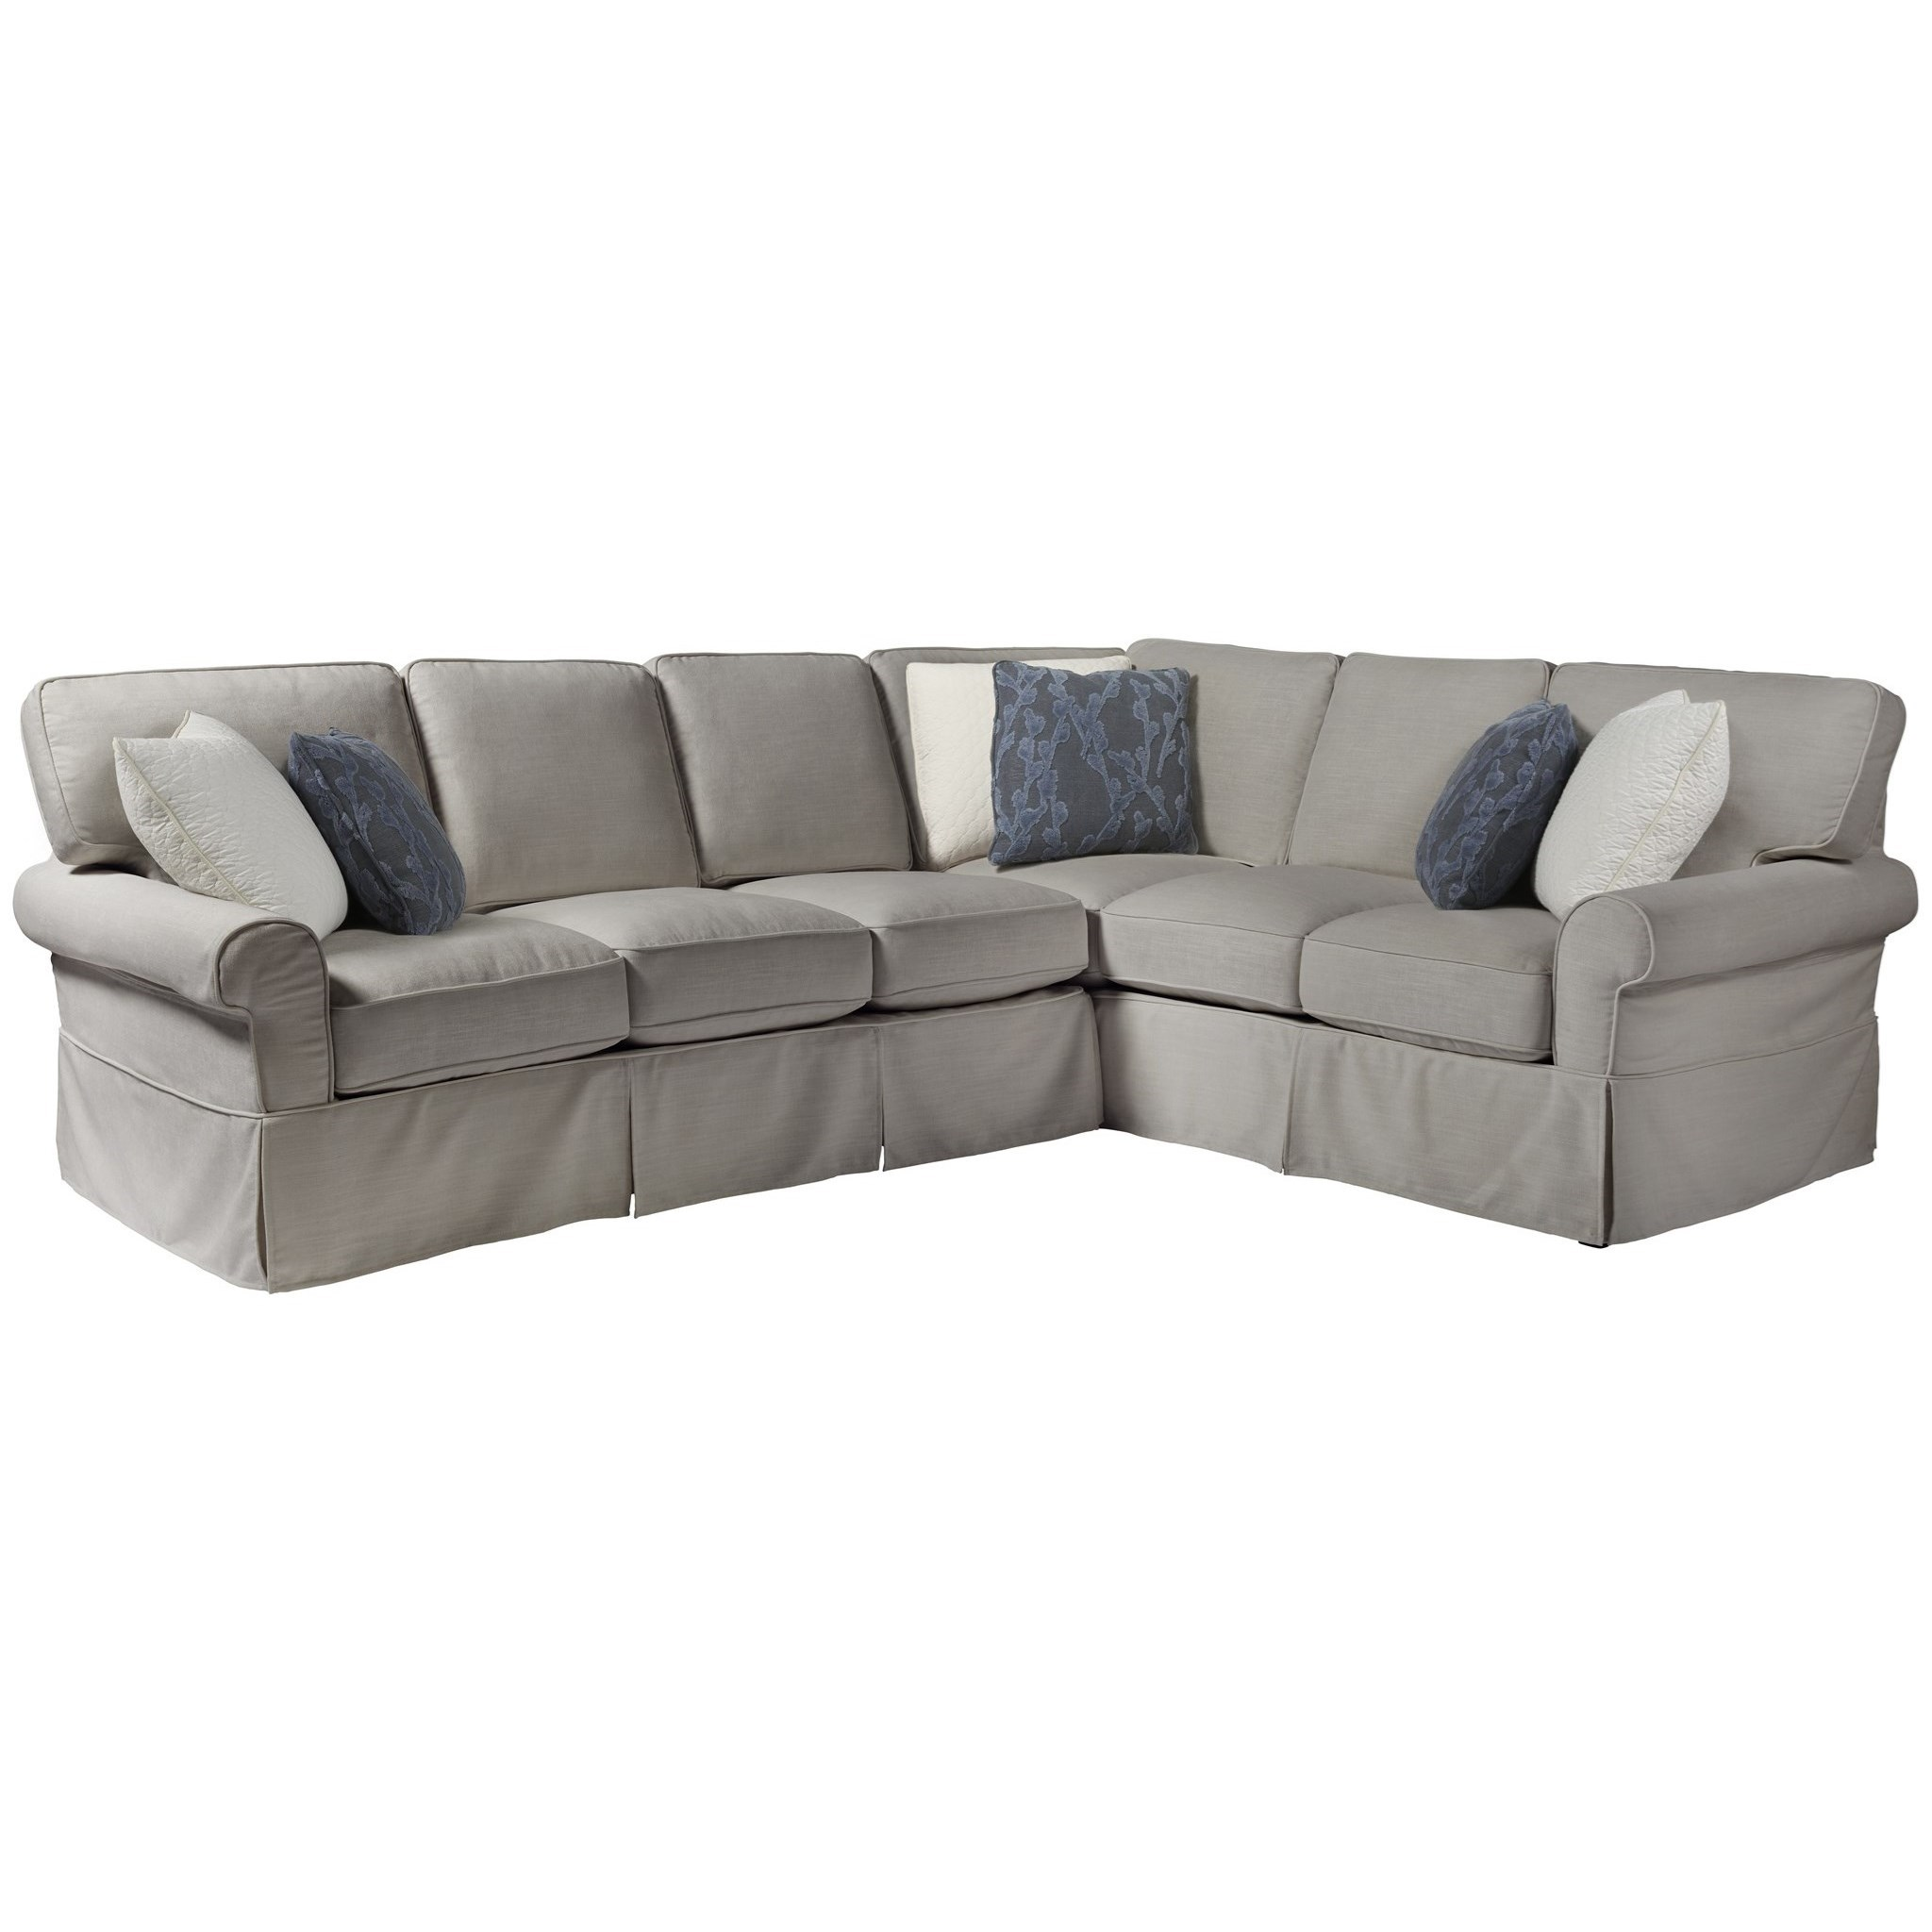 Coastal Living Home - Escape Ventura Left Arm Sectional by Universal at Baer's Furniture